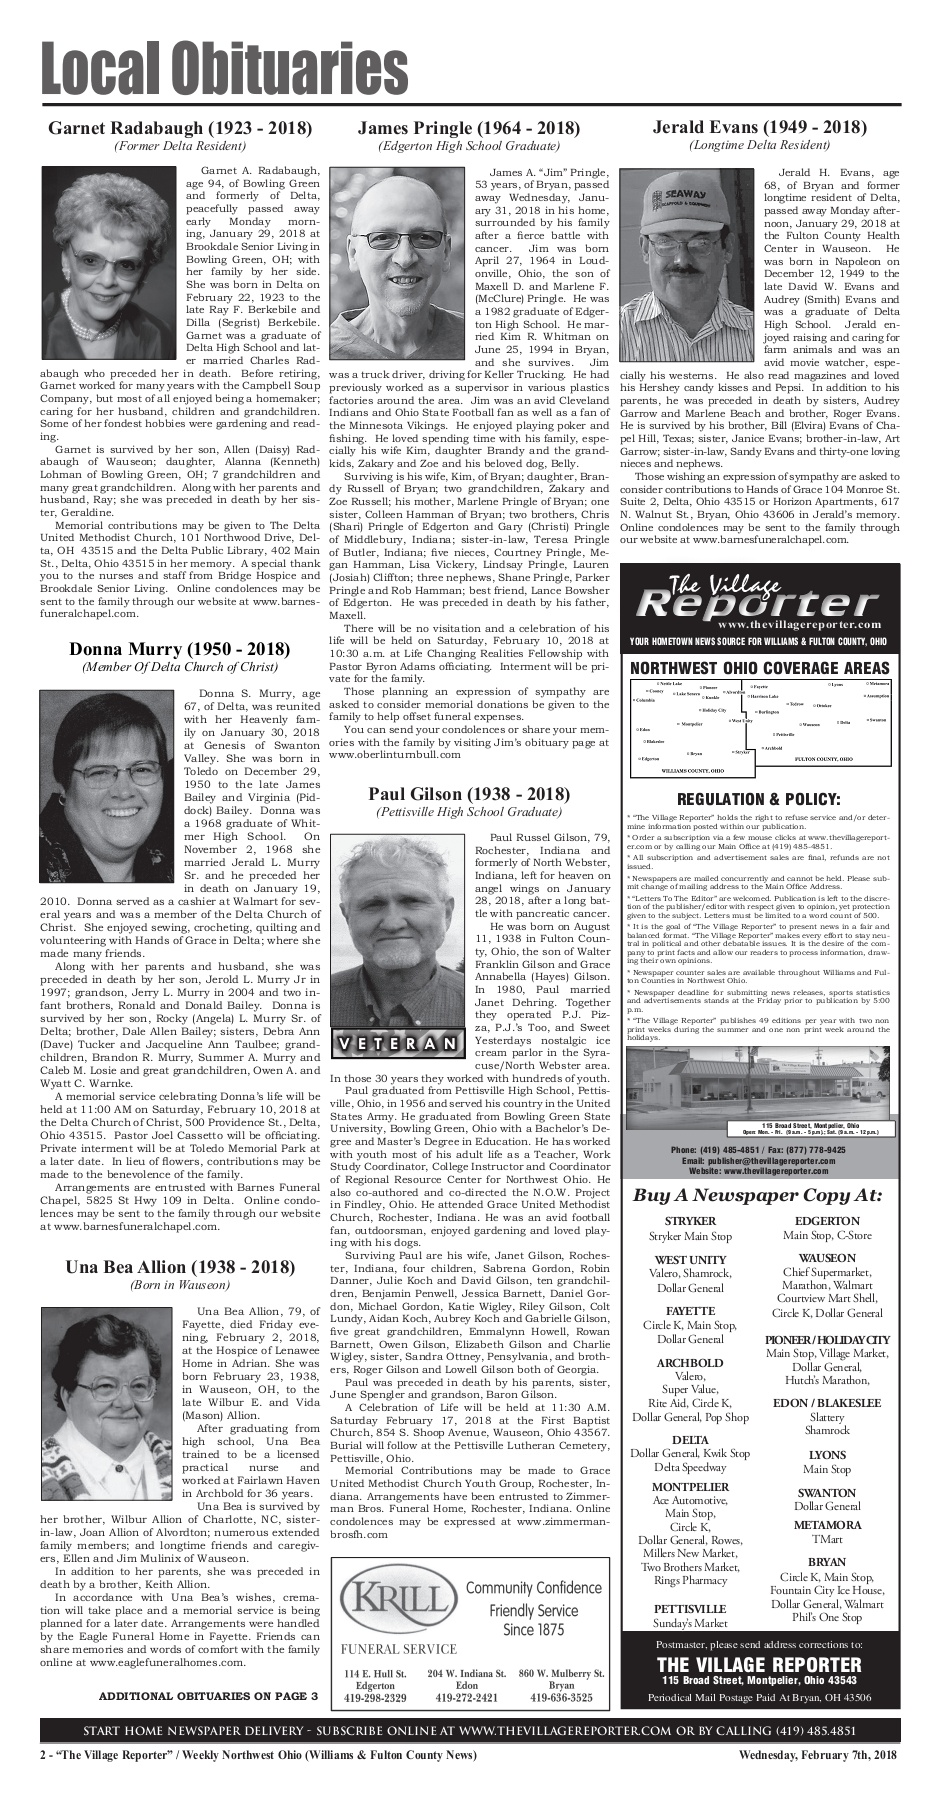 The Village Reporter - February 7th, 2018 Pages 1 - 42 - Text